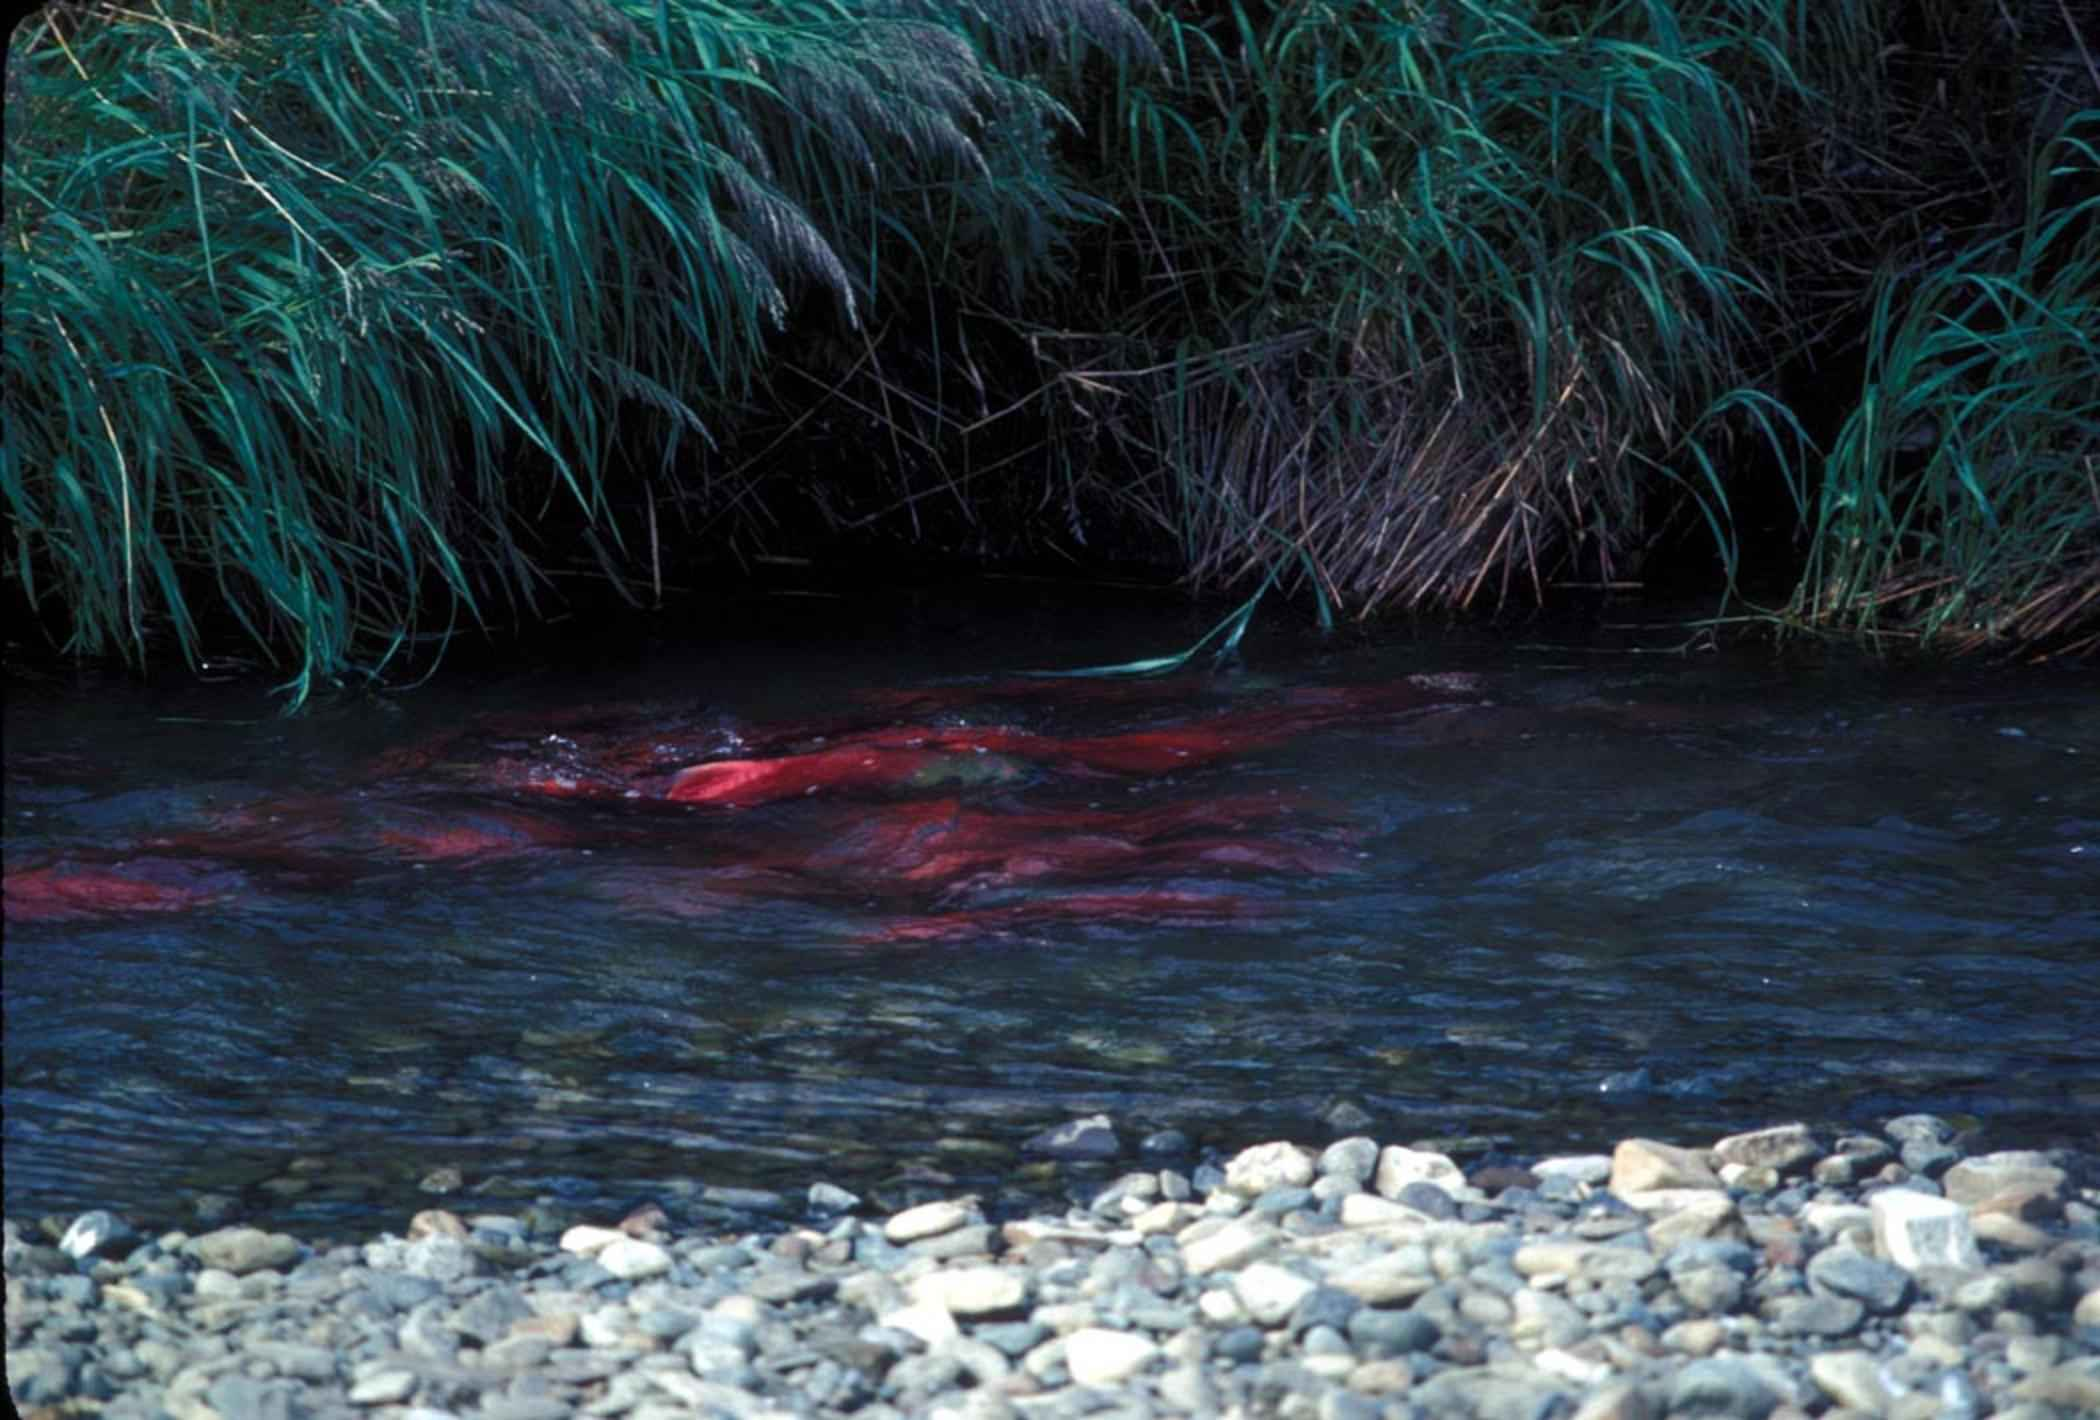 Free Picture Red Salmon Sockeye Salmon Spawning Bed